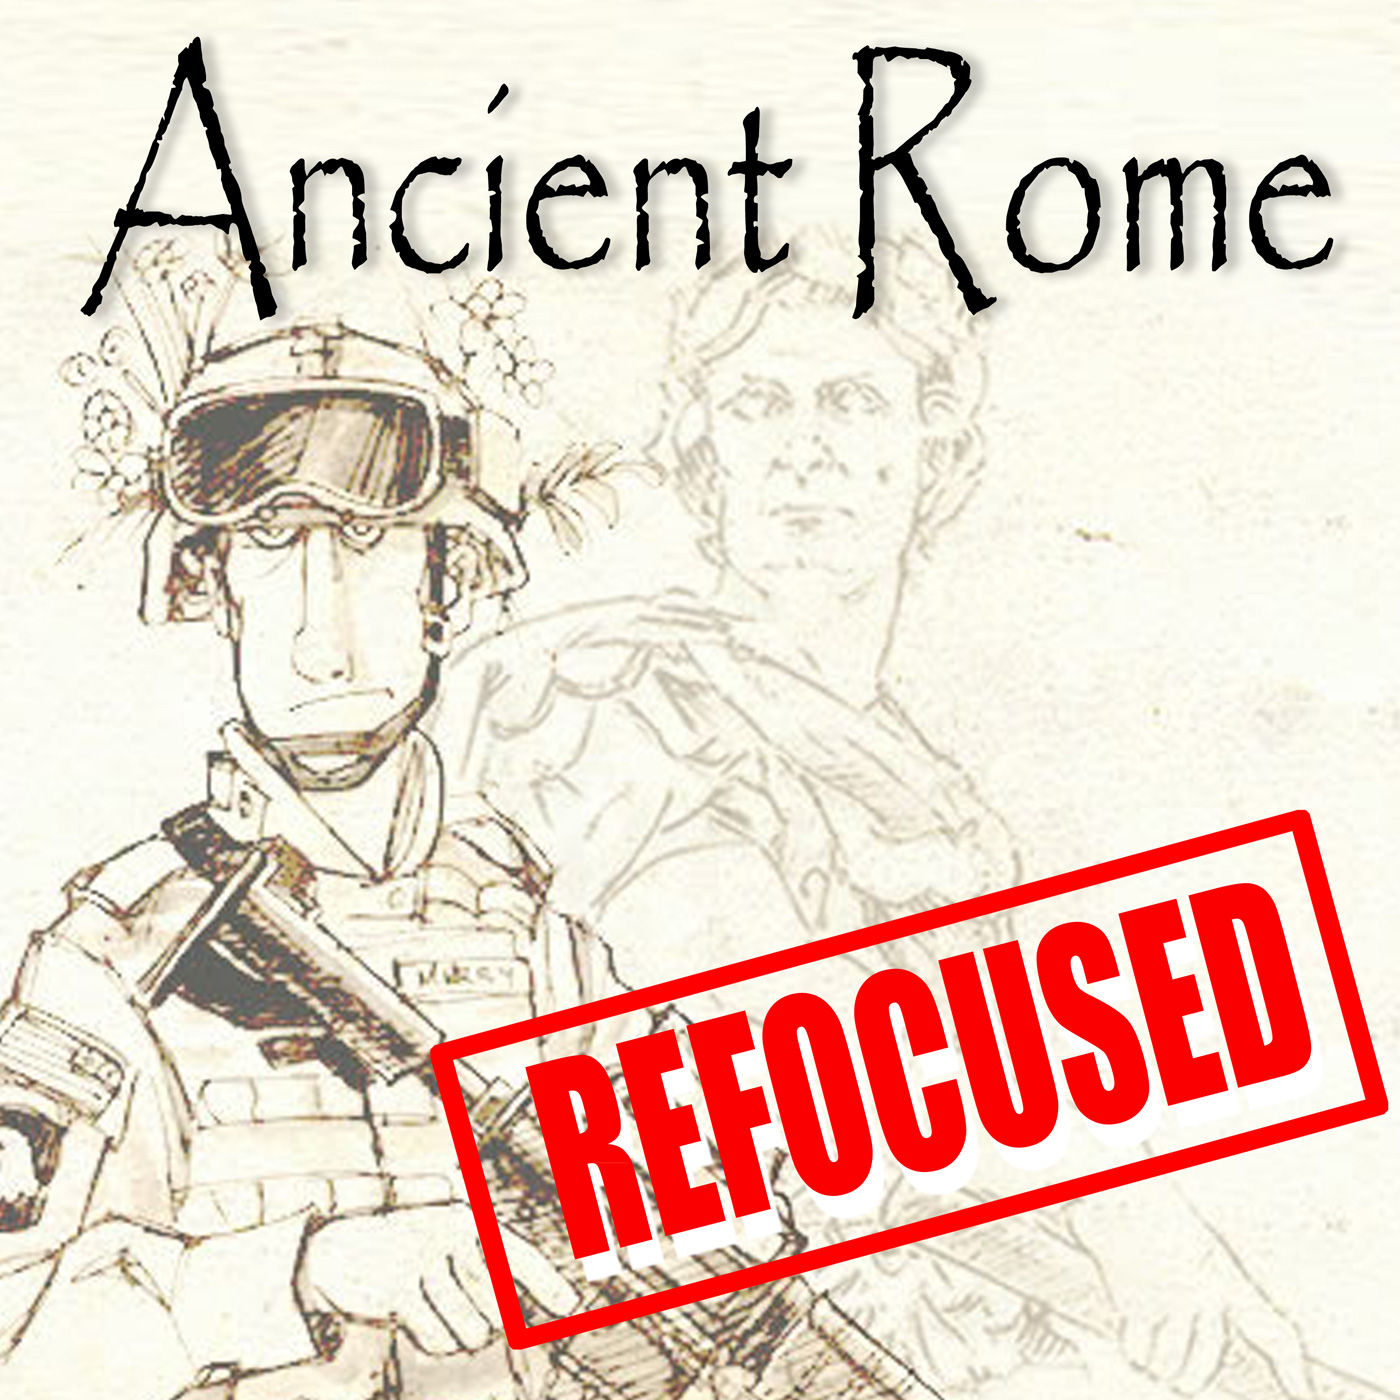 Ancient Rome Refocused